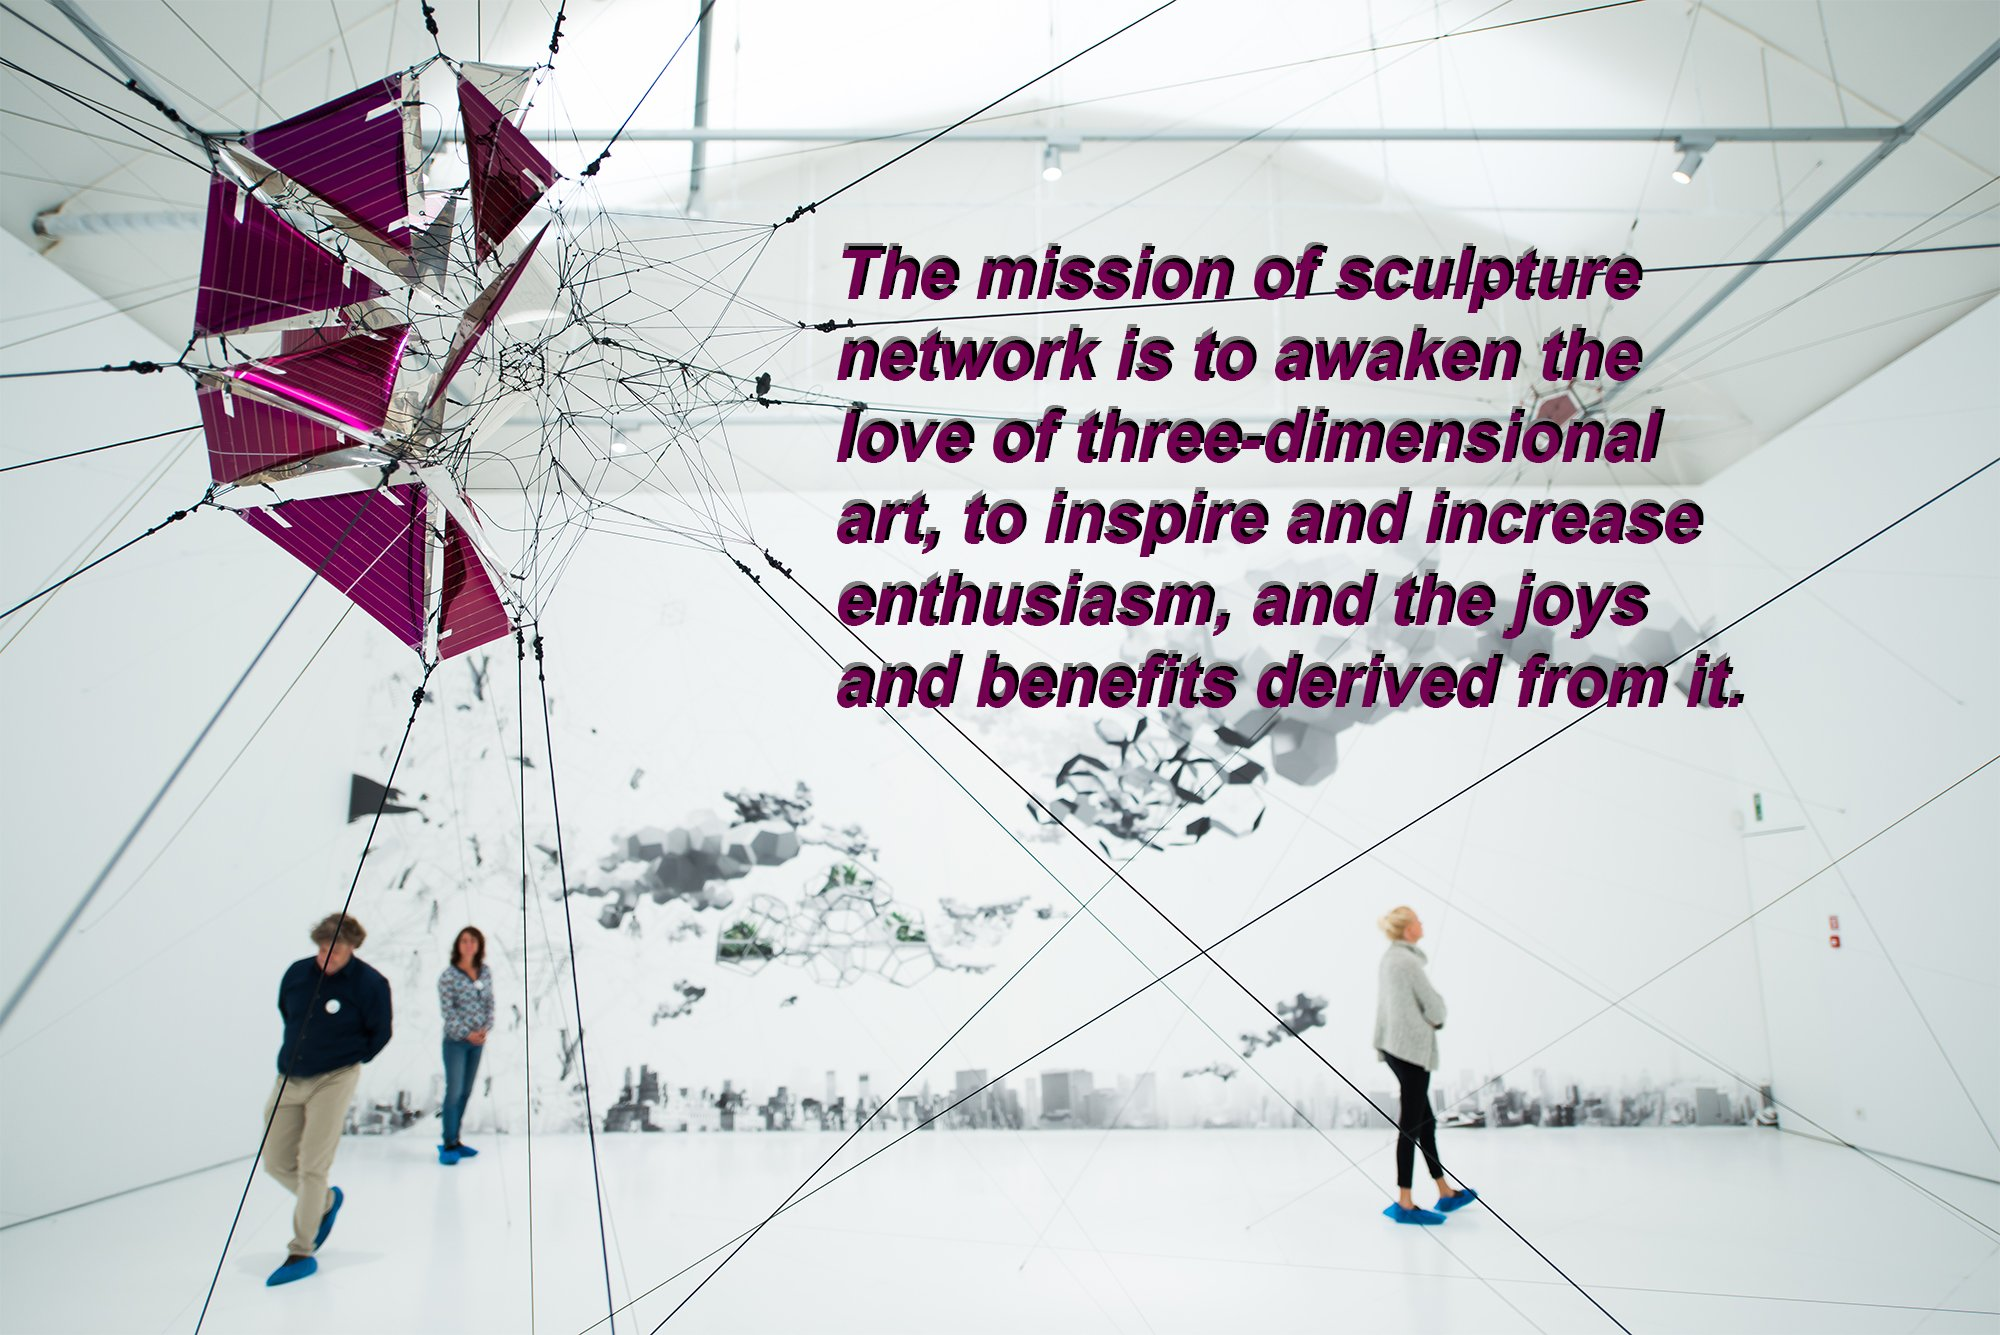 sculpture network's mission. Photo: Christine Chilcott